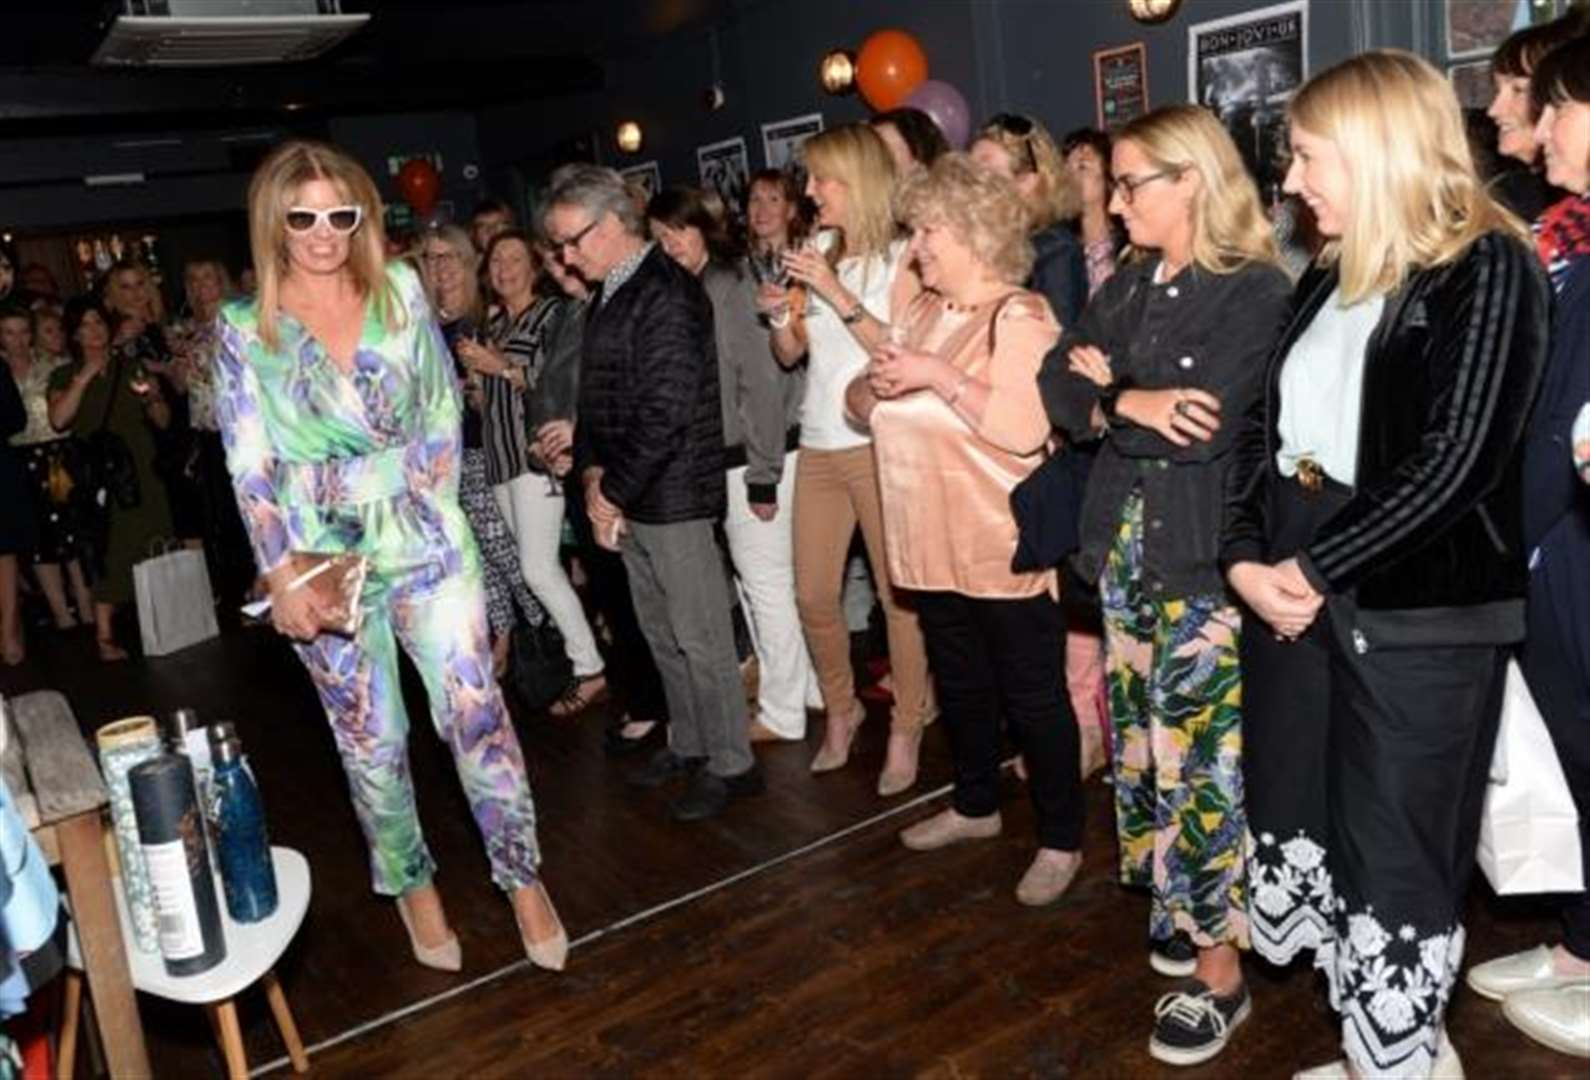 Friends of fashion: show marks Friends Dress Agency's 20 years in business